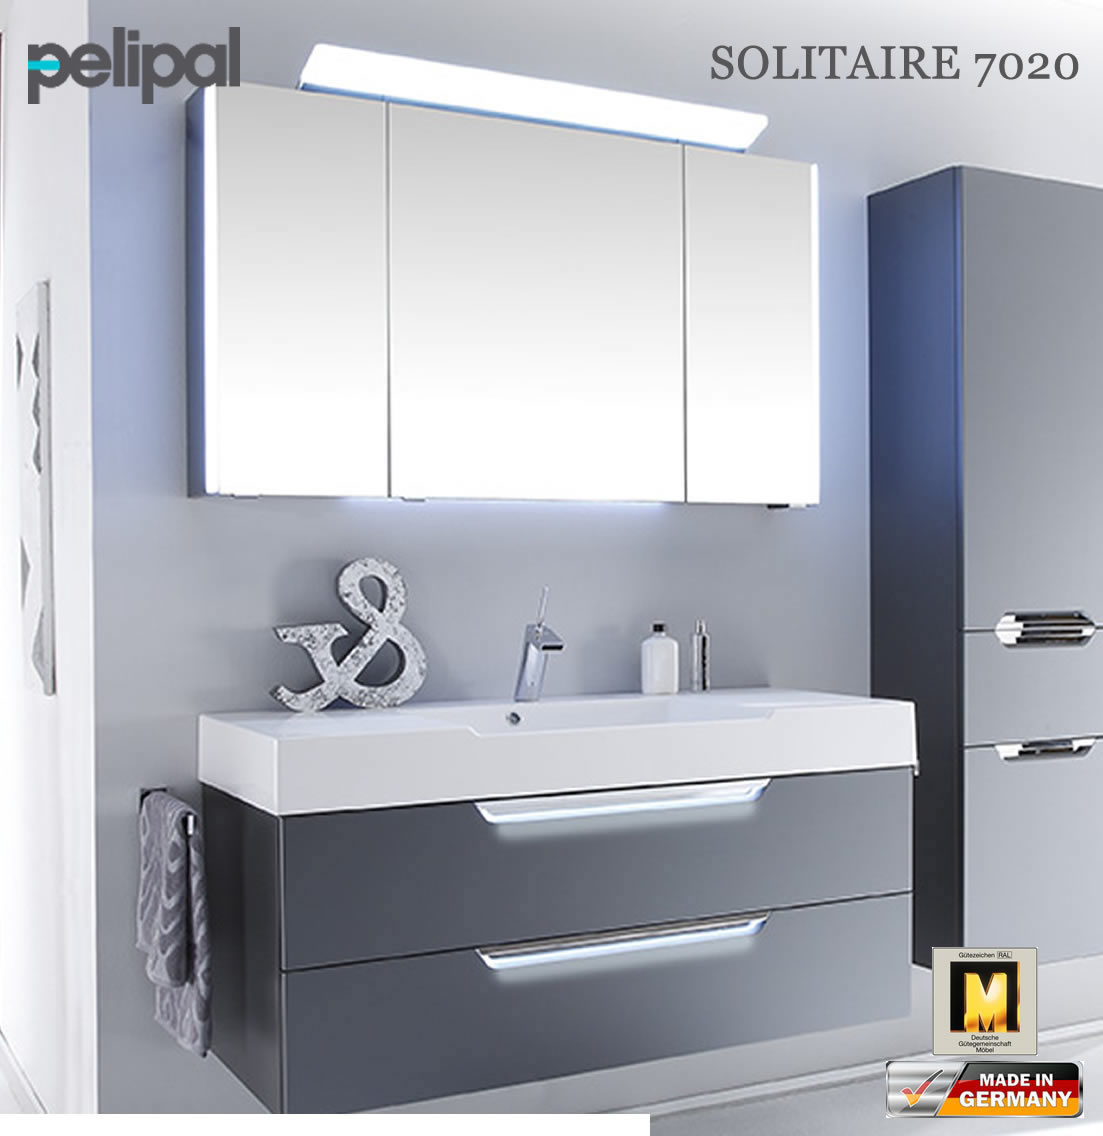 pelipal solitaire 7020 badm bel set mit 1200 mm waschtisch. Black Bedroom Furniture Sets. Home Design Ideas